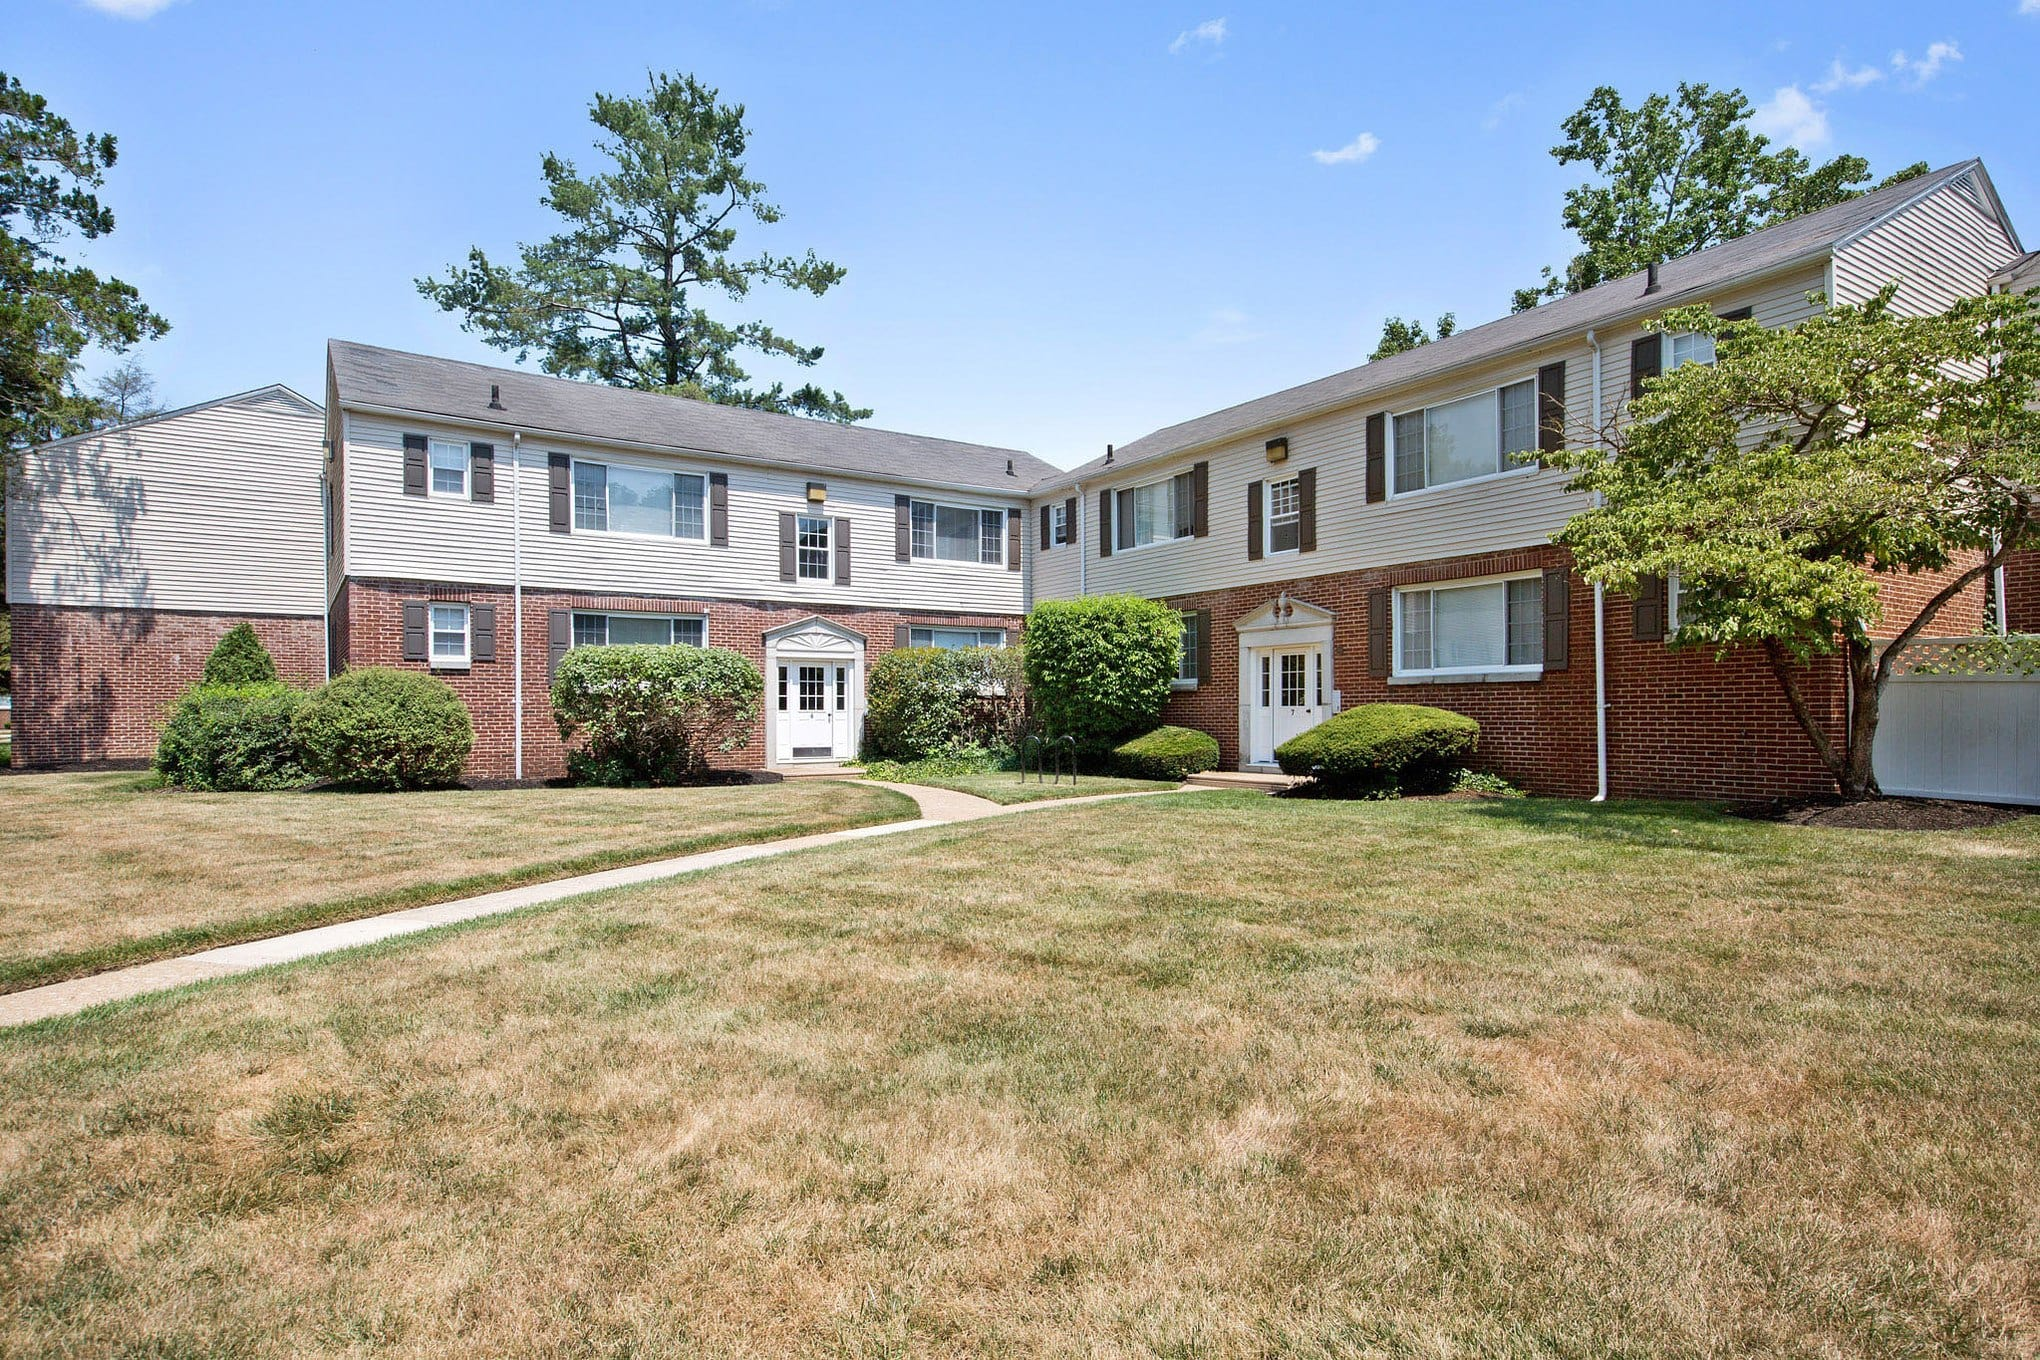 Exterior to Village Square Apartments in Mount Holly, NJ